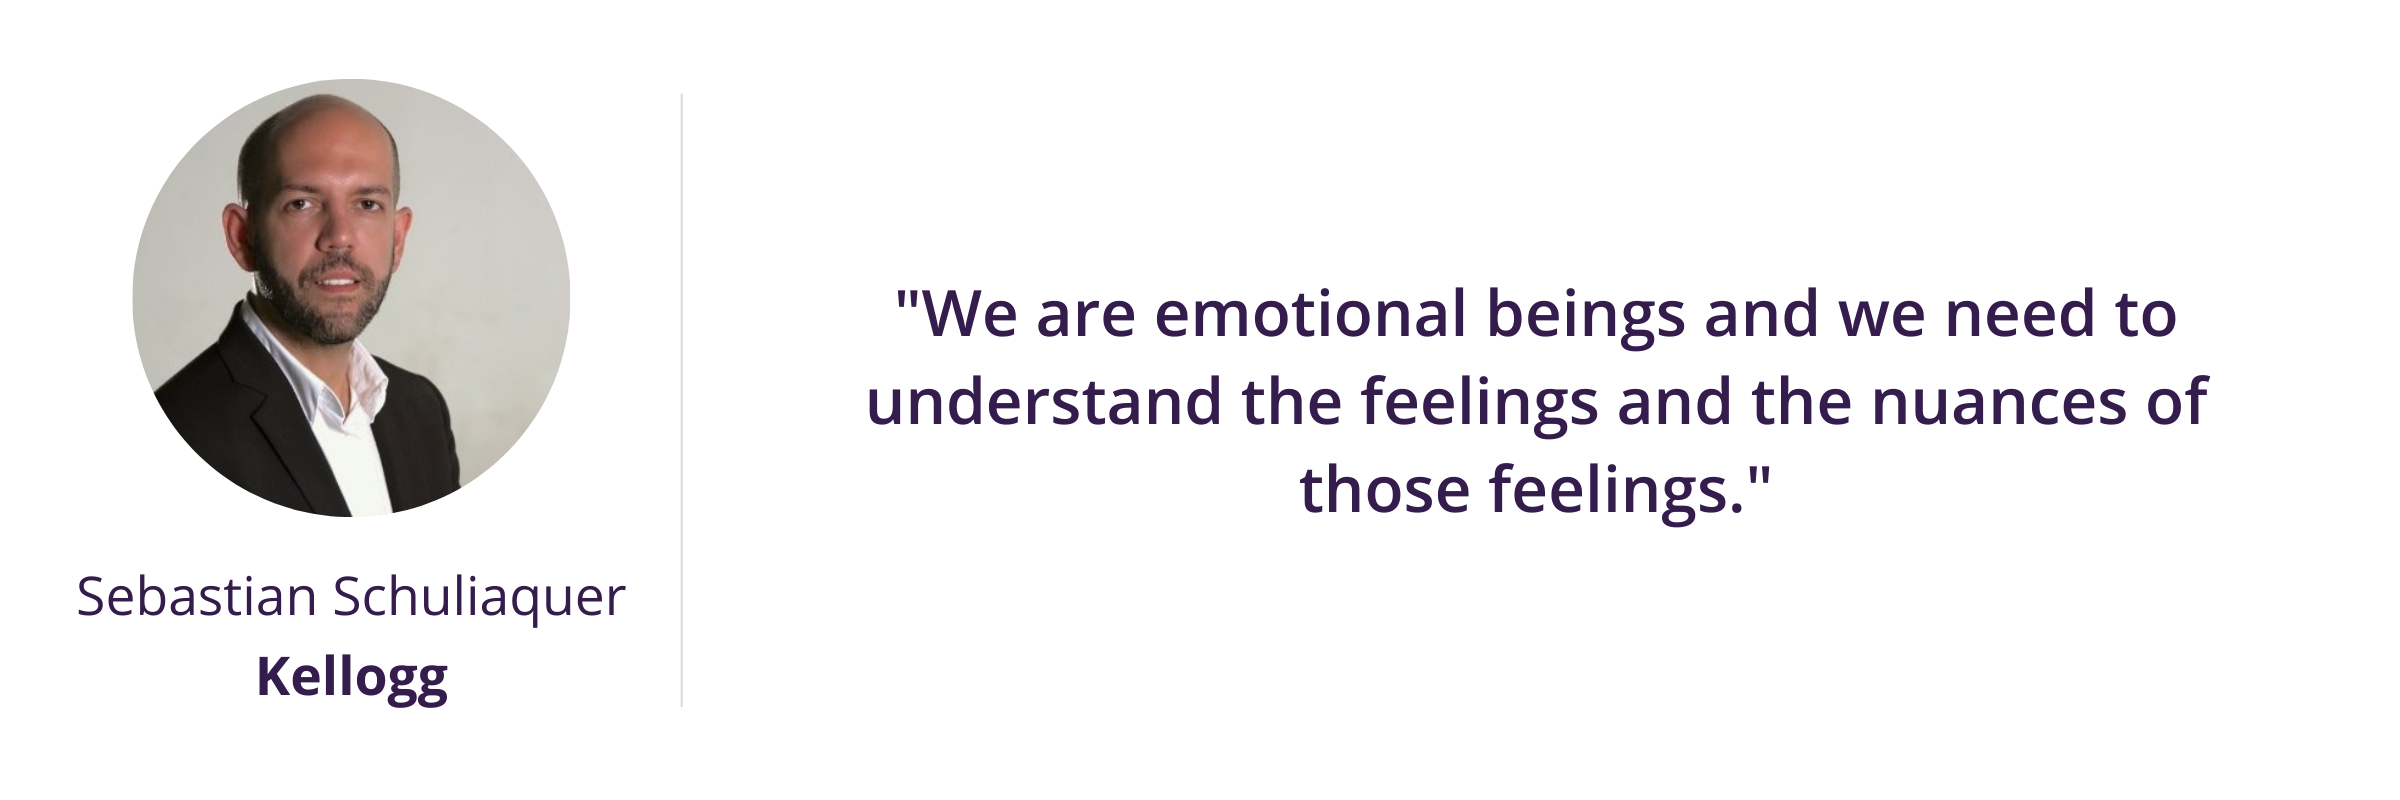 We are emotional beings and we need to understand the feelings and the nuances of those feelings.